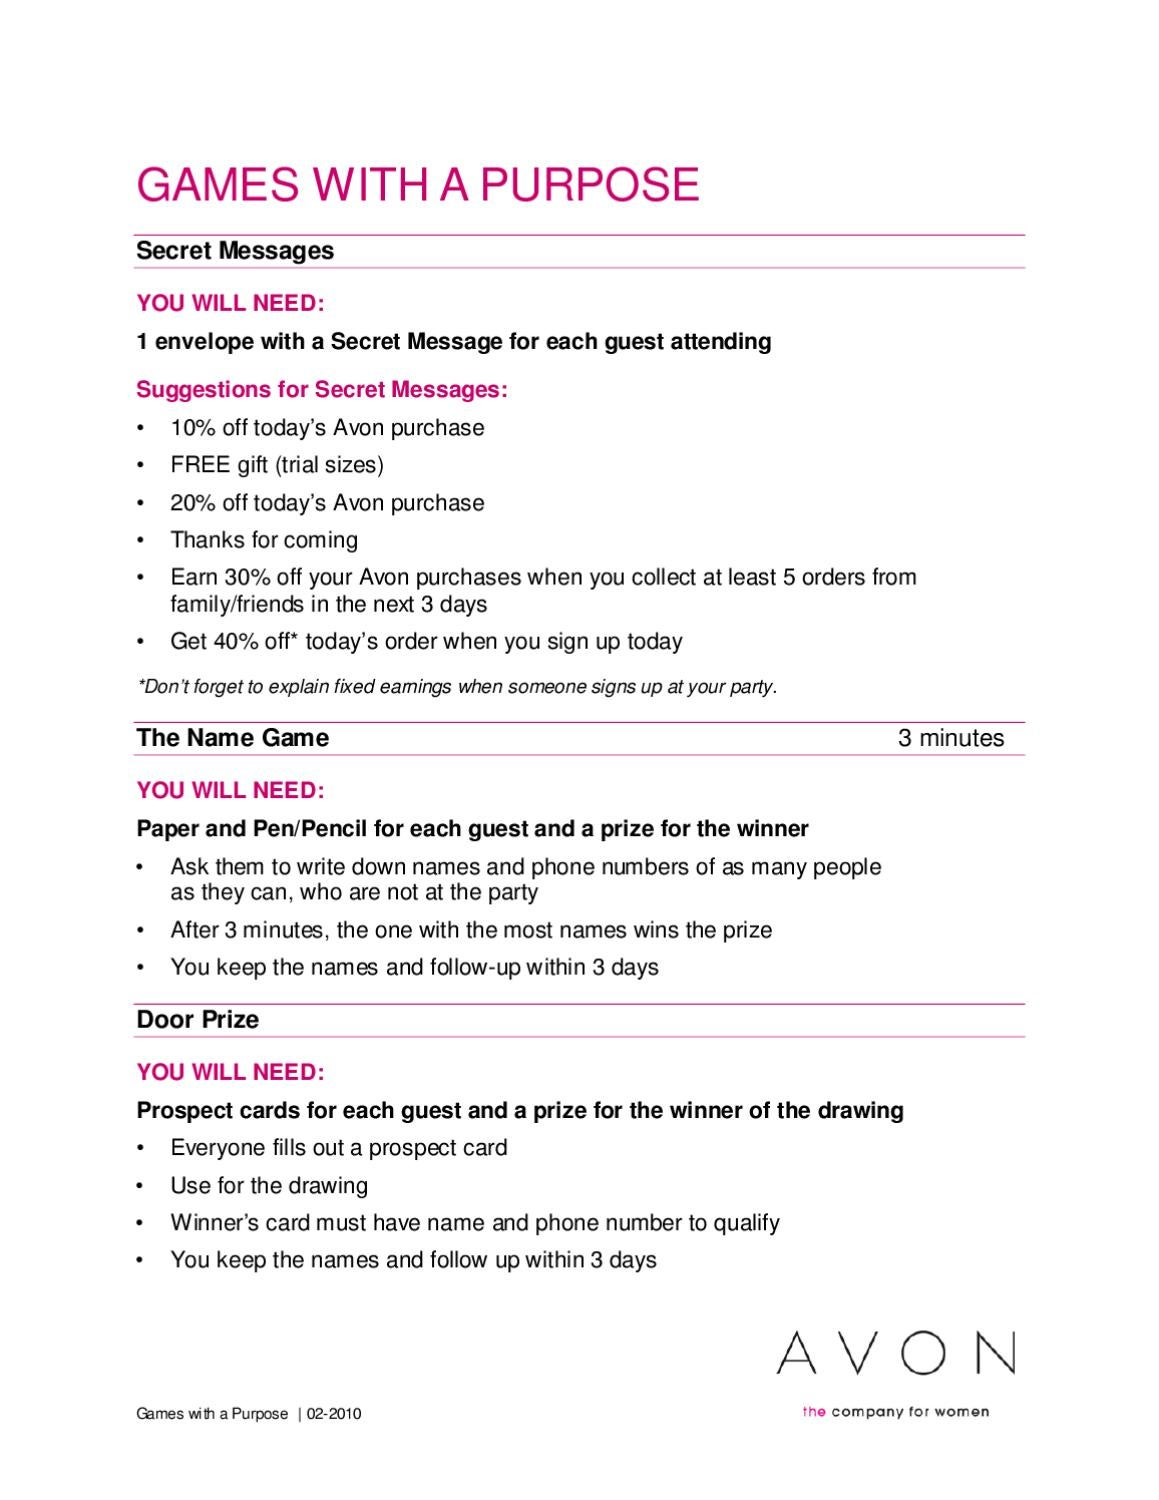 Games_with_a_Purpose_v2 by ralph romero - issuu